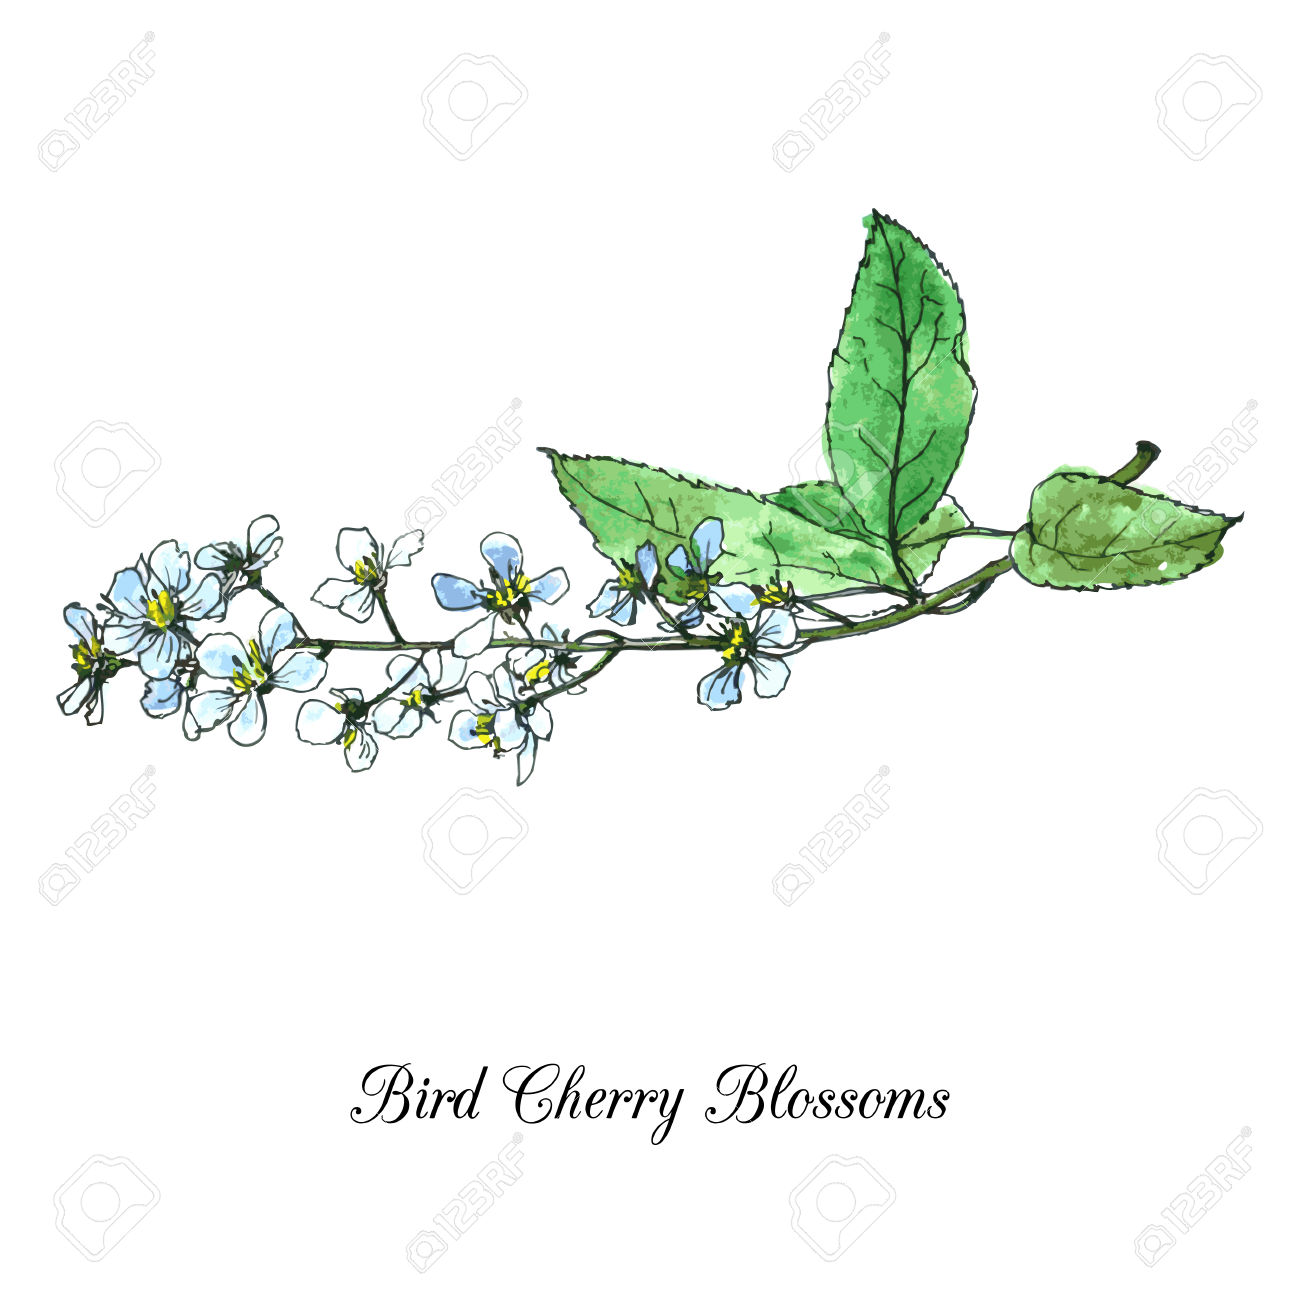 Spring Flowers Of Bird Cherry Tree, Blossoms With Green Leaves.